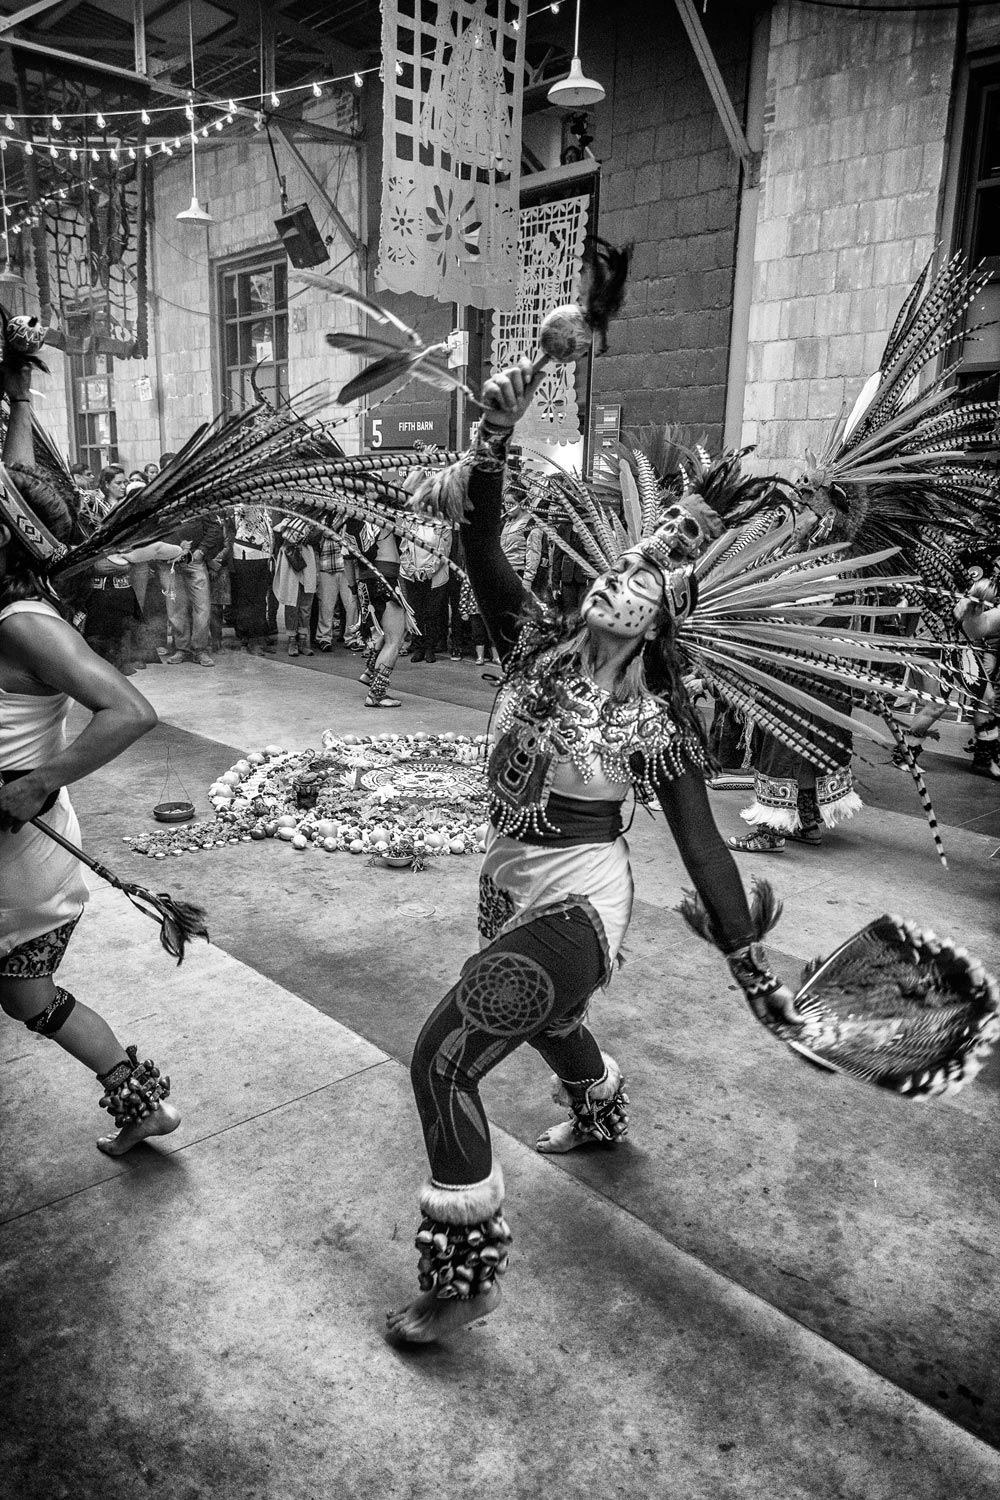 Dance, Day of the Dead, Wychwood, Barns, Toronto, Halloween, Black and White